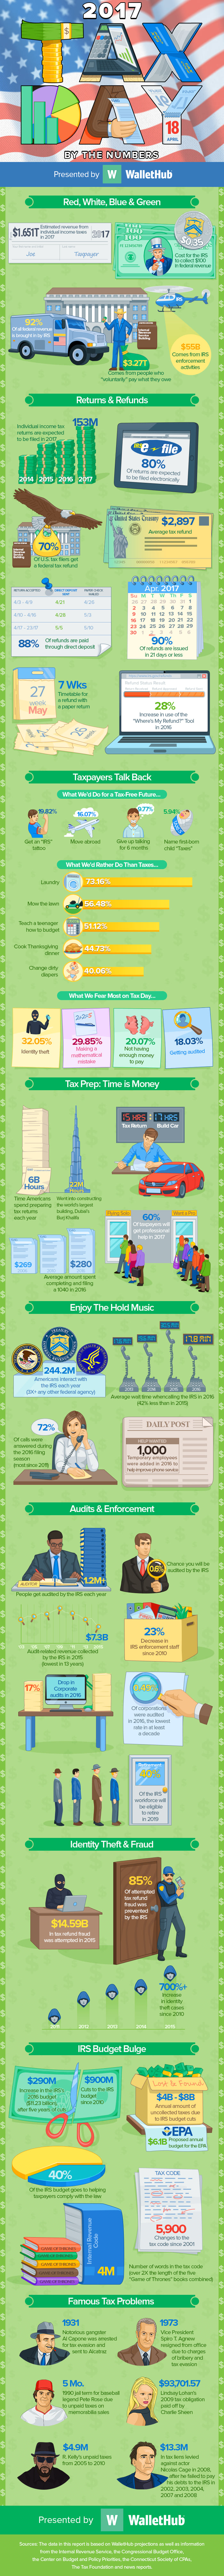 Tax Day Infographic